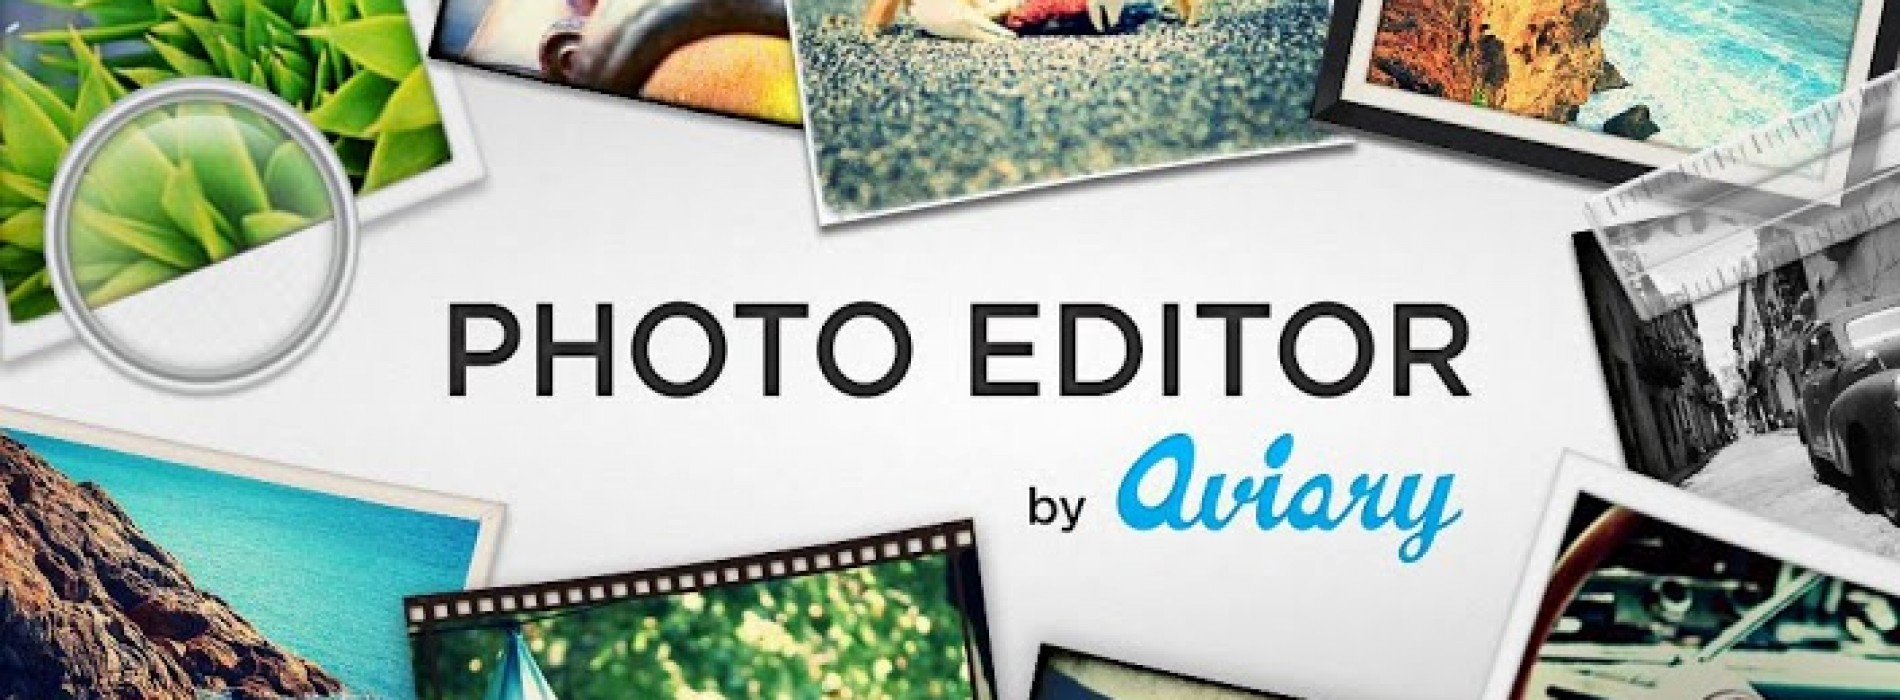 Aviary's Photo Editor gets overhauled in 3.0 release